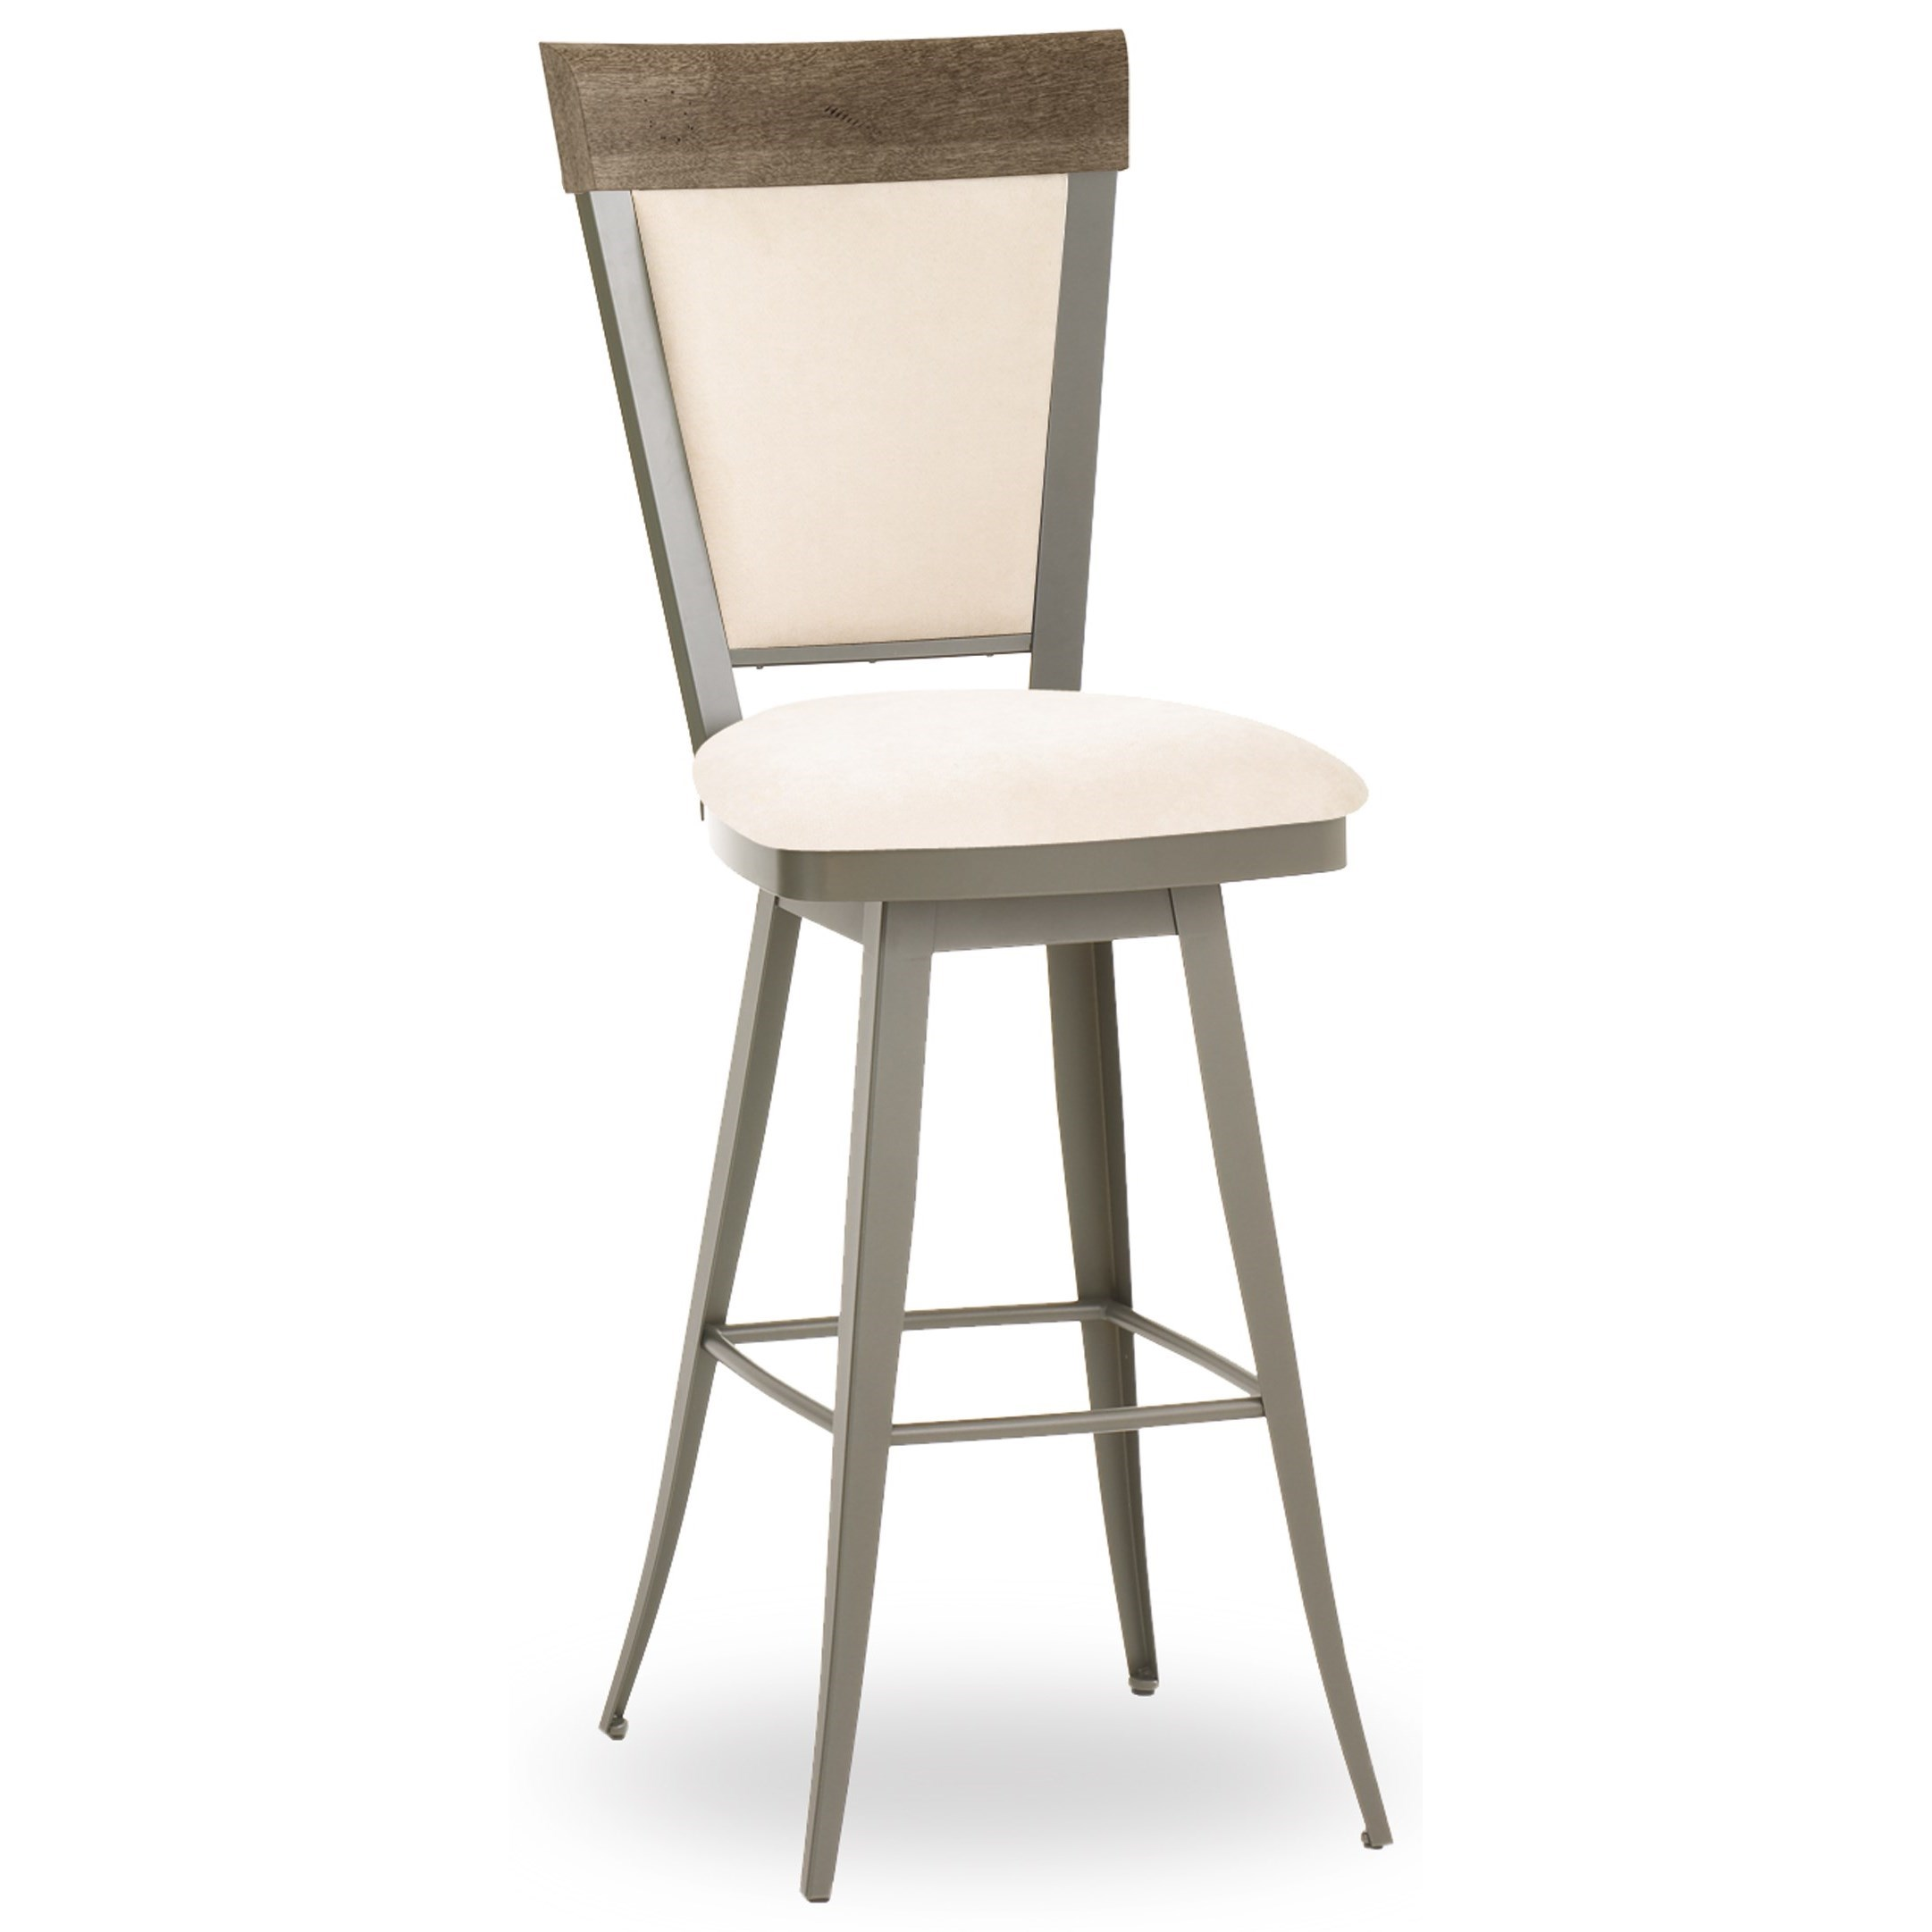 Amisco Farmhouse Customizable 30 Eleanor Swivel Bar Stool With Upholstered Seat And Back A1 Furniture Mattress Bar Stools